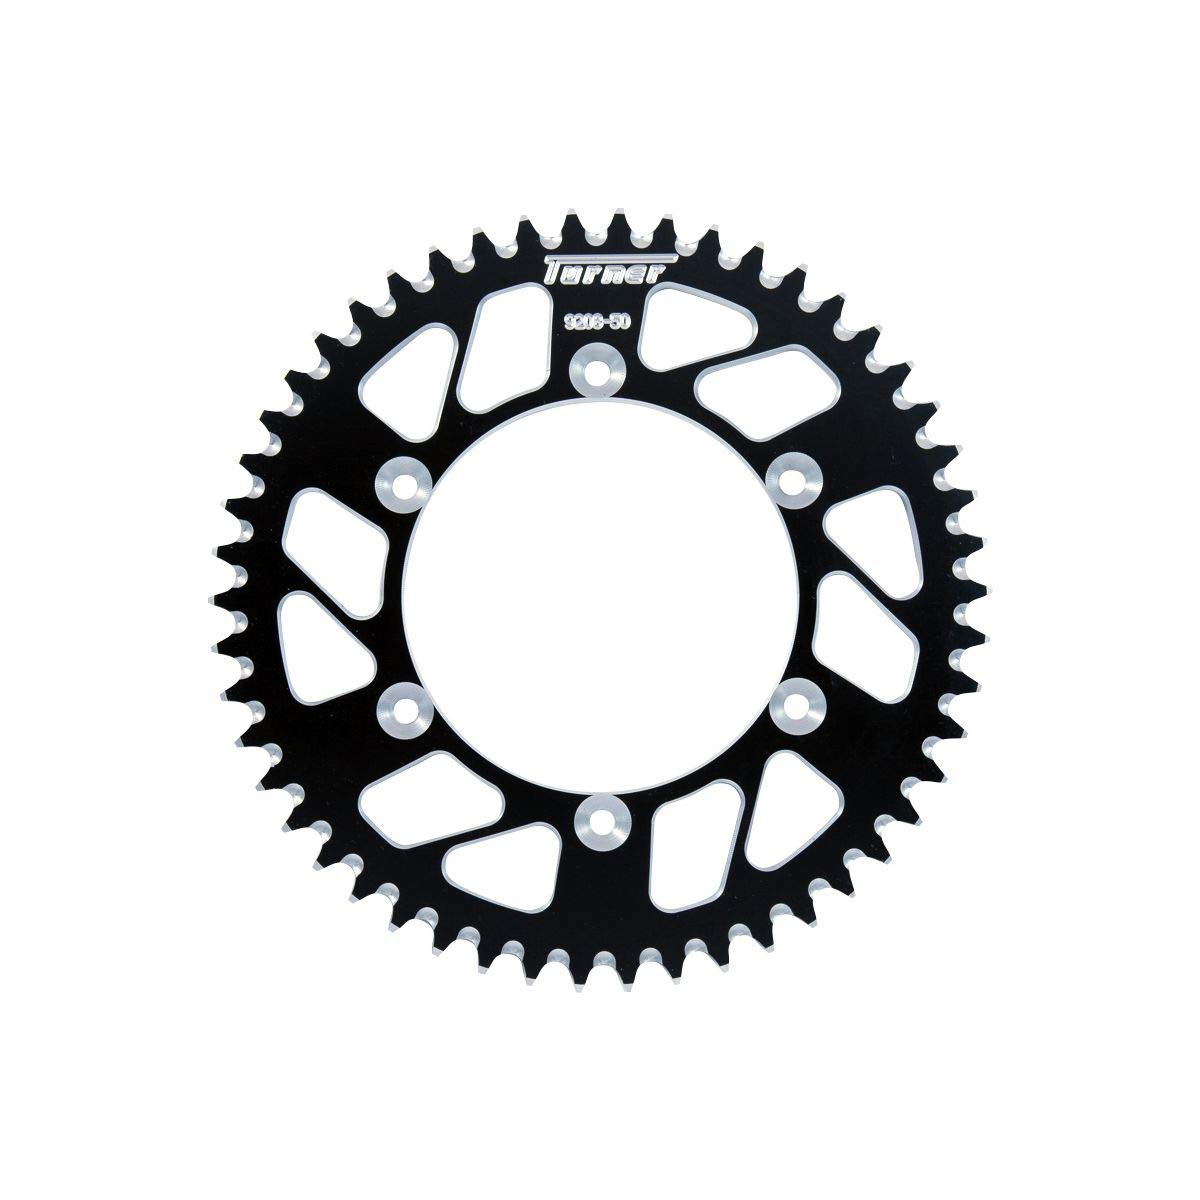 amazon 07 19 honda crf150r turner performance products Pink Honda amazon 07 19 honda crf150r turner performance products aluminum rear sprocket 420 56t black automotive